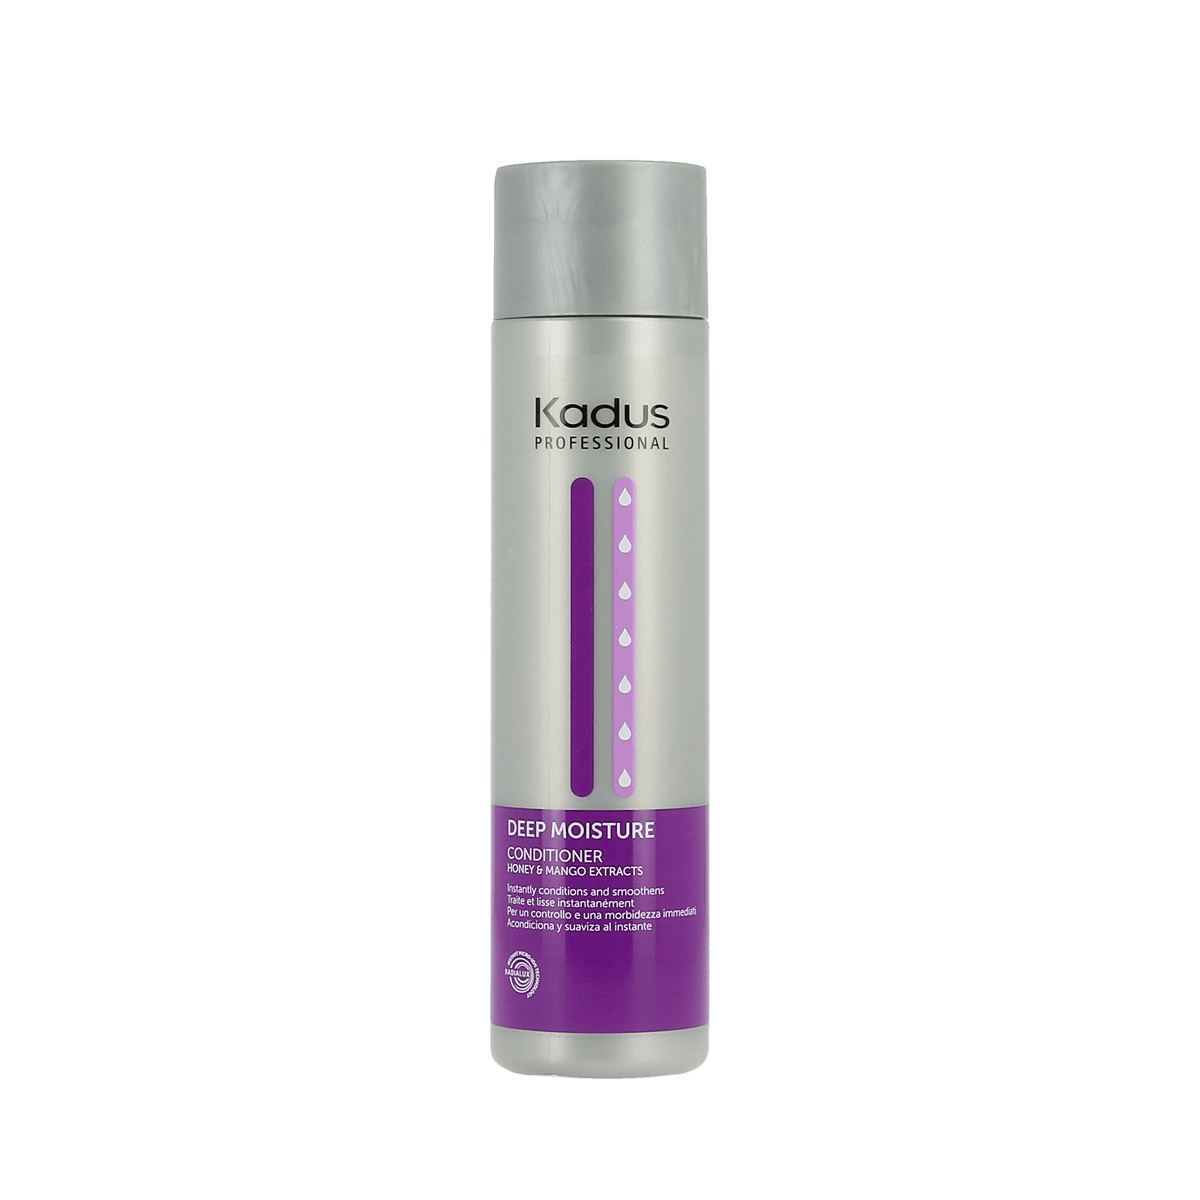 Kadus Deep Moisture Conditioner 250ml